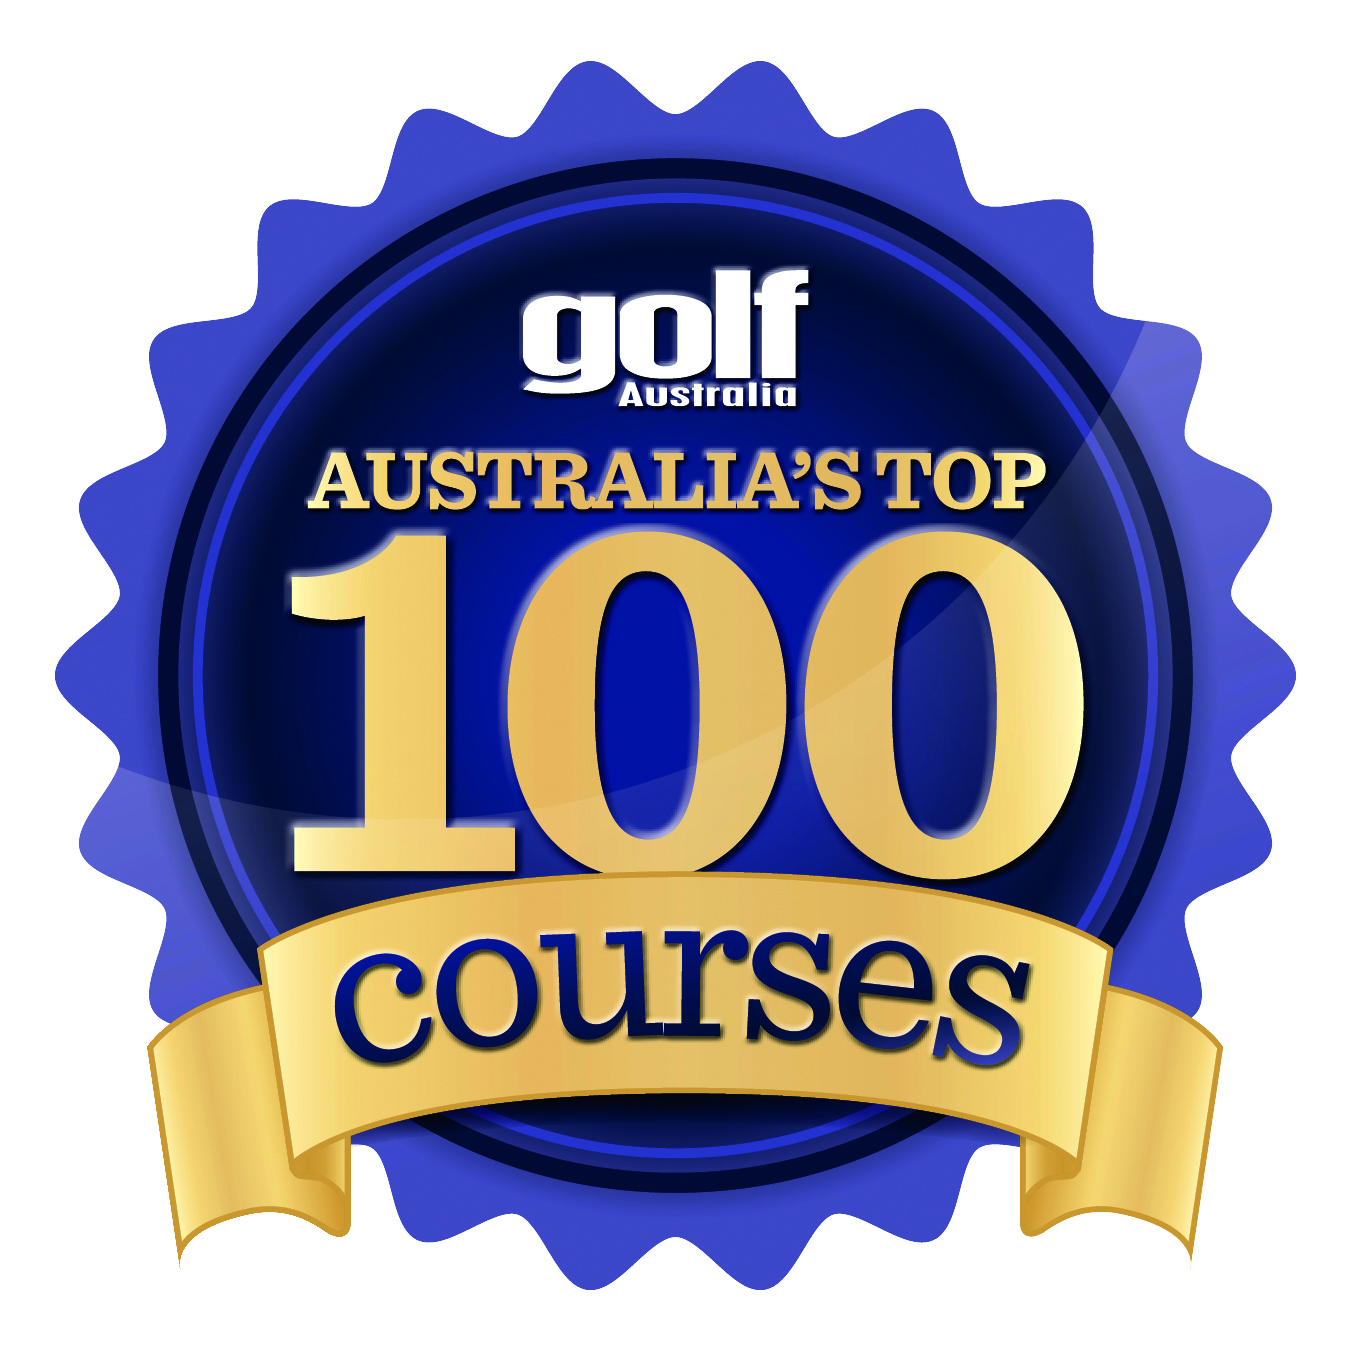 TOP 100 COURSES 2016 STAMP